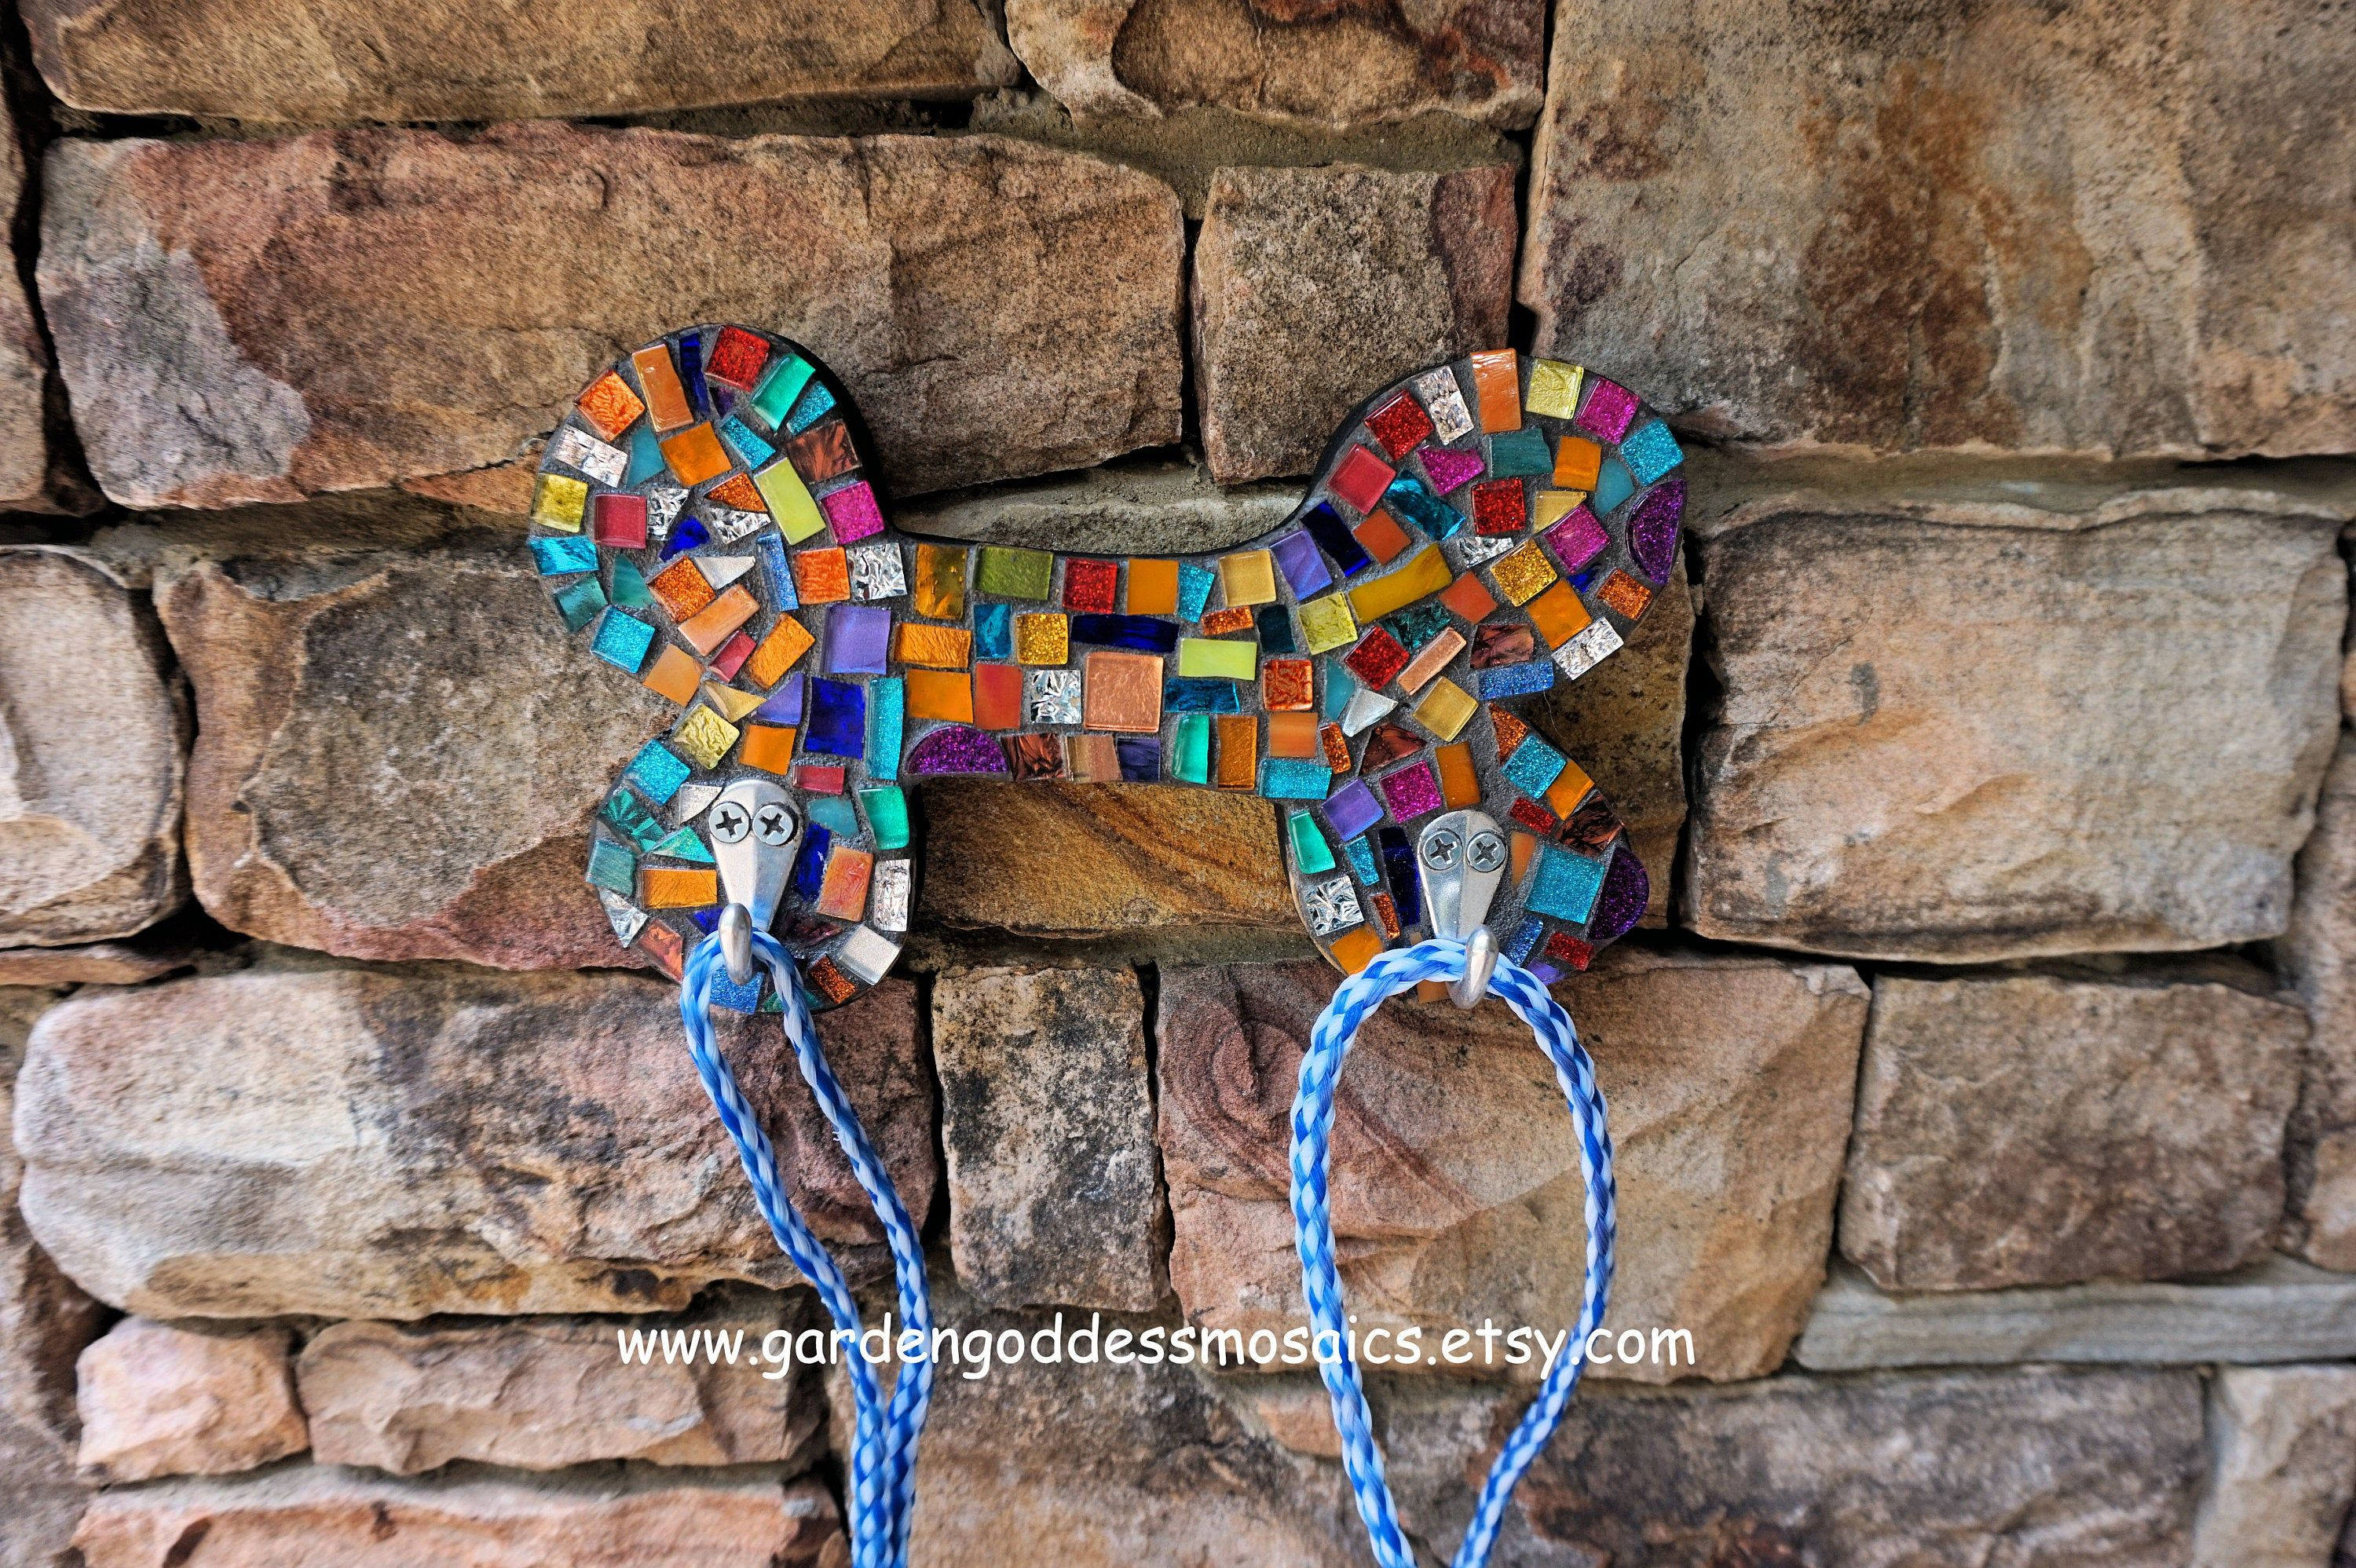 Stained Glass Mosaic Dog Leash Wall Hook